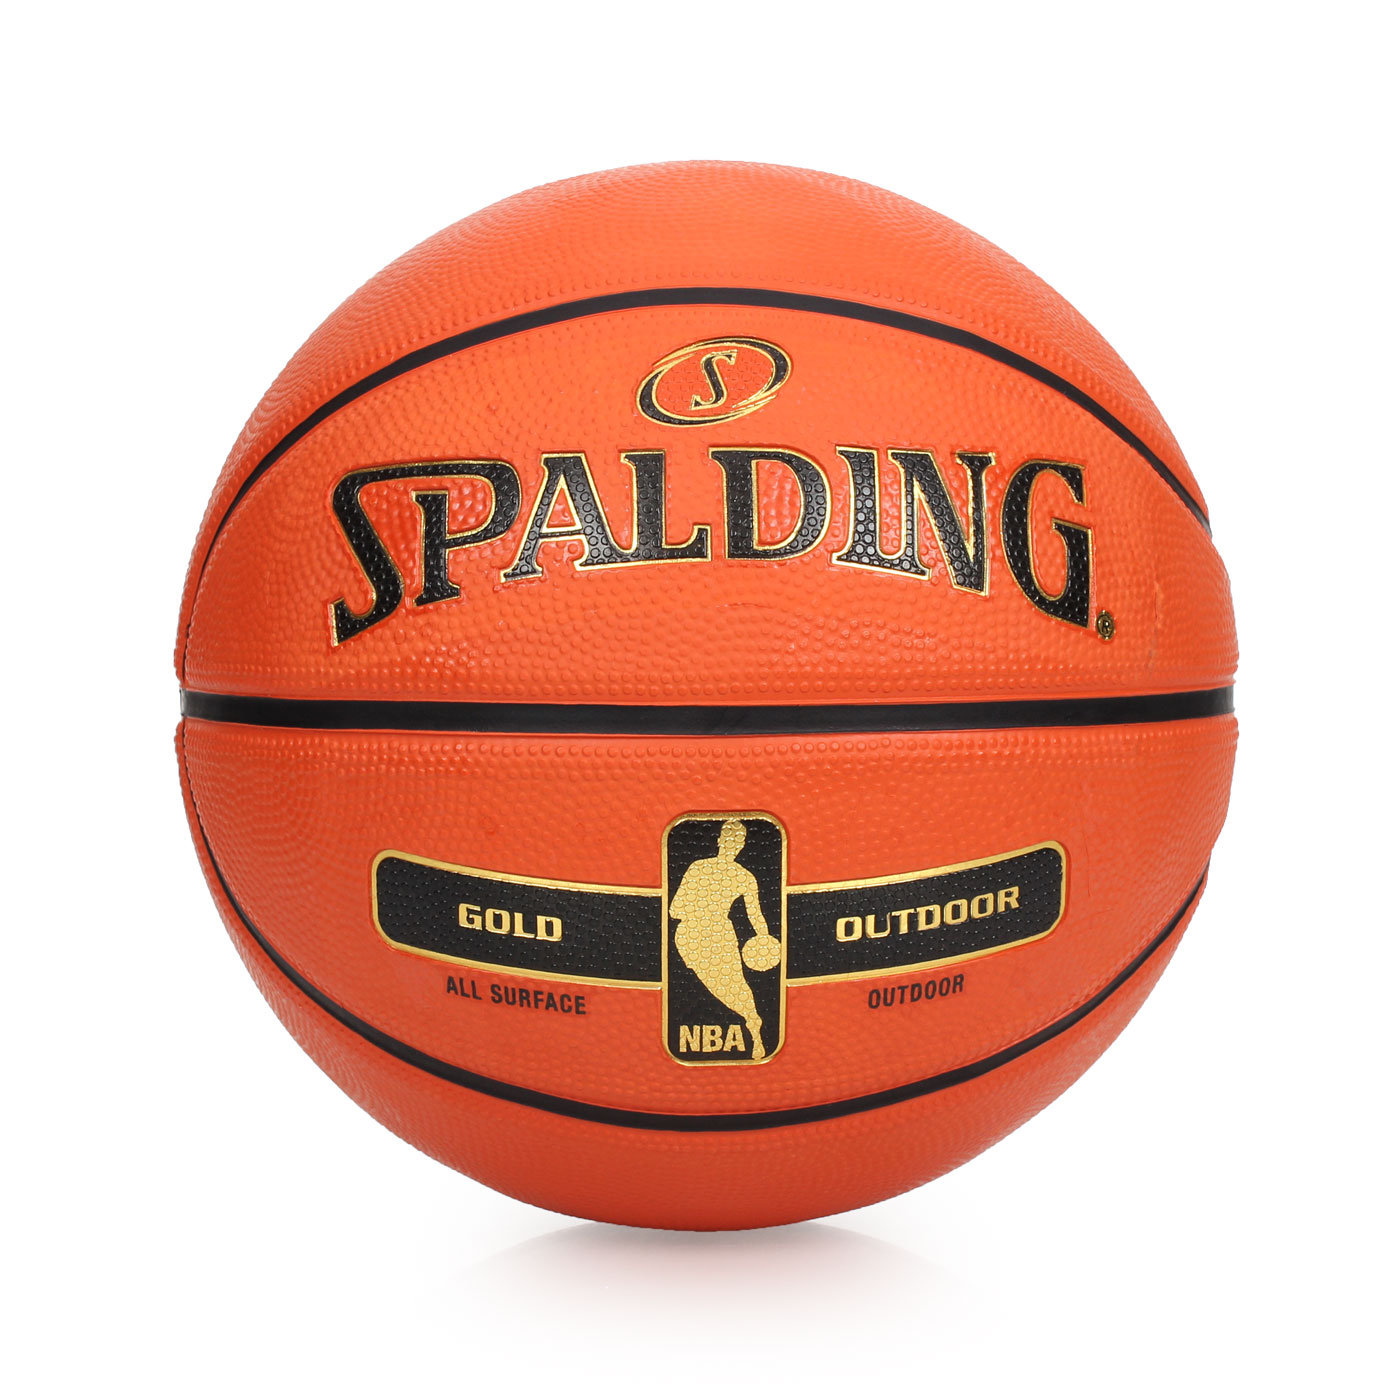 SPALDING 金色NBA-Rubber 籃球 SPA83492 - 橘金